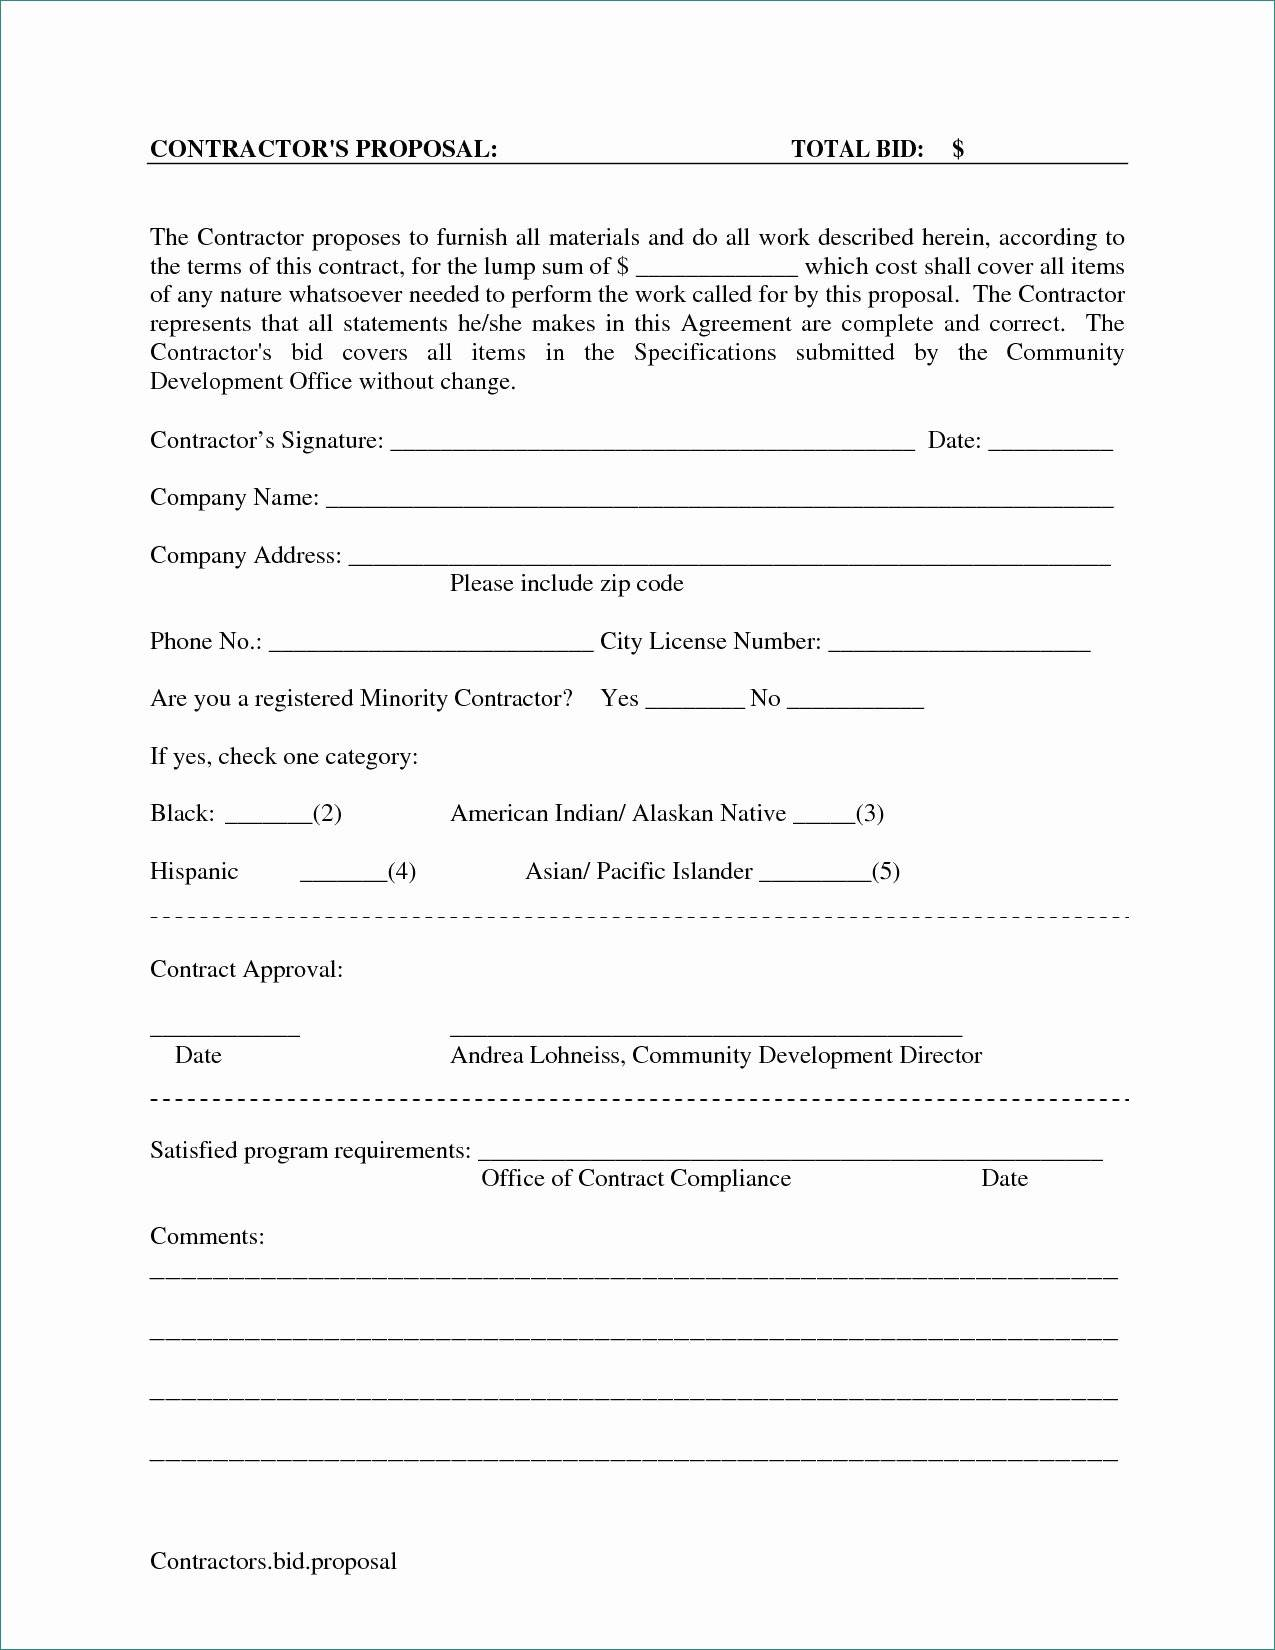 Lawn Care Bid Proposal Template Excel